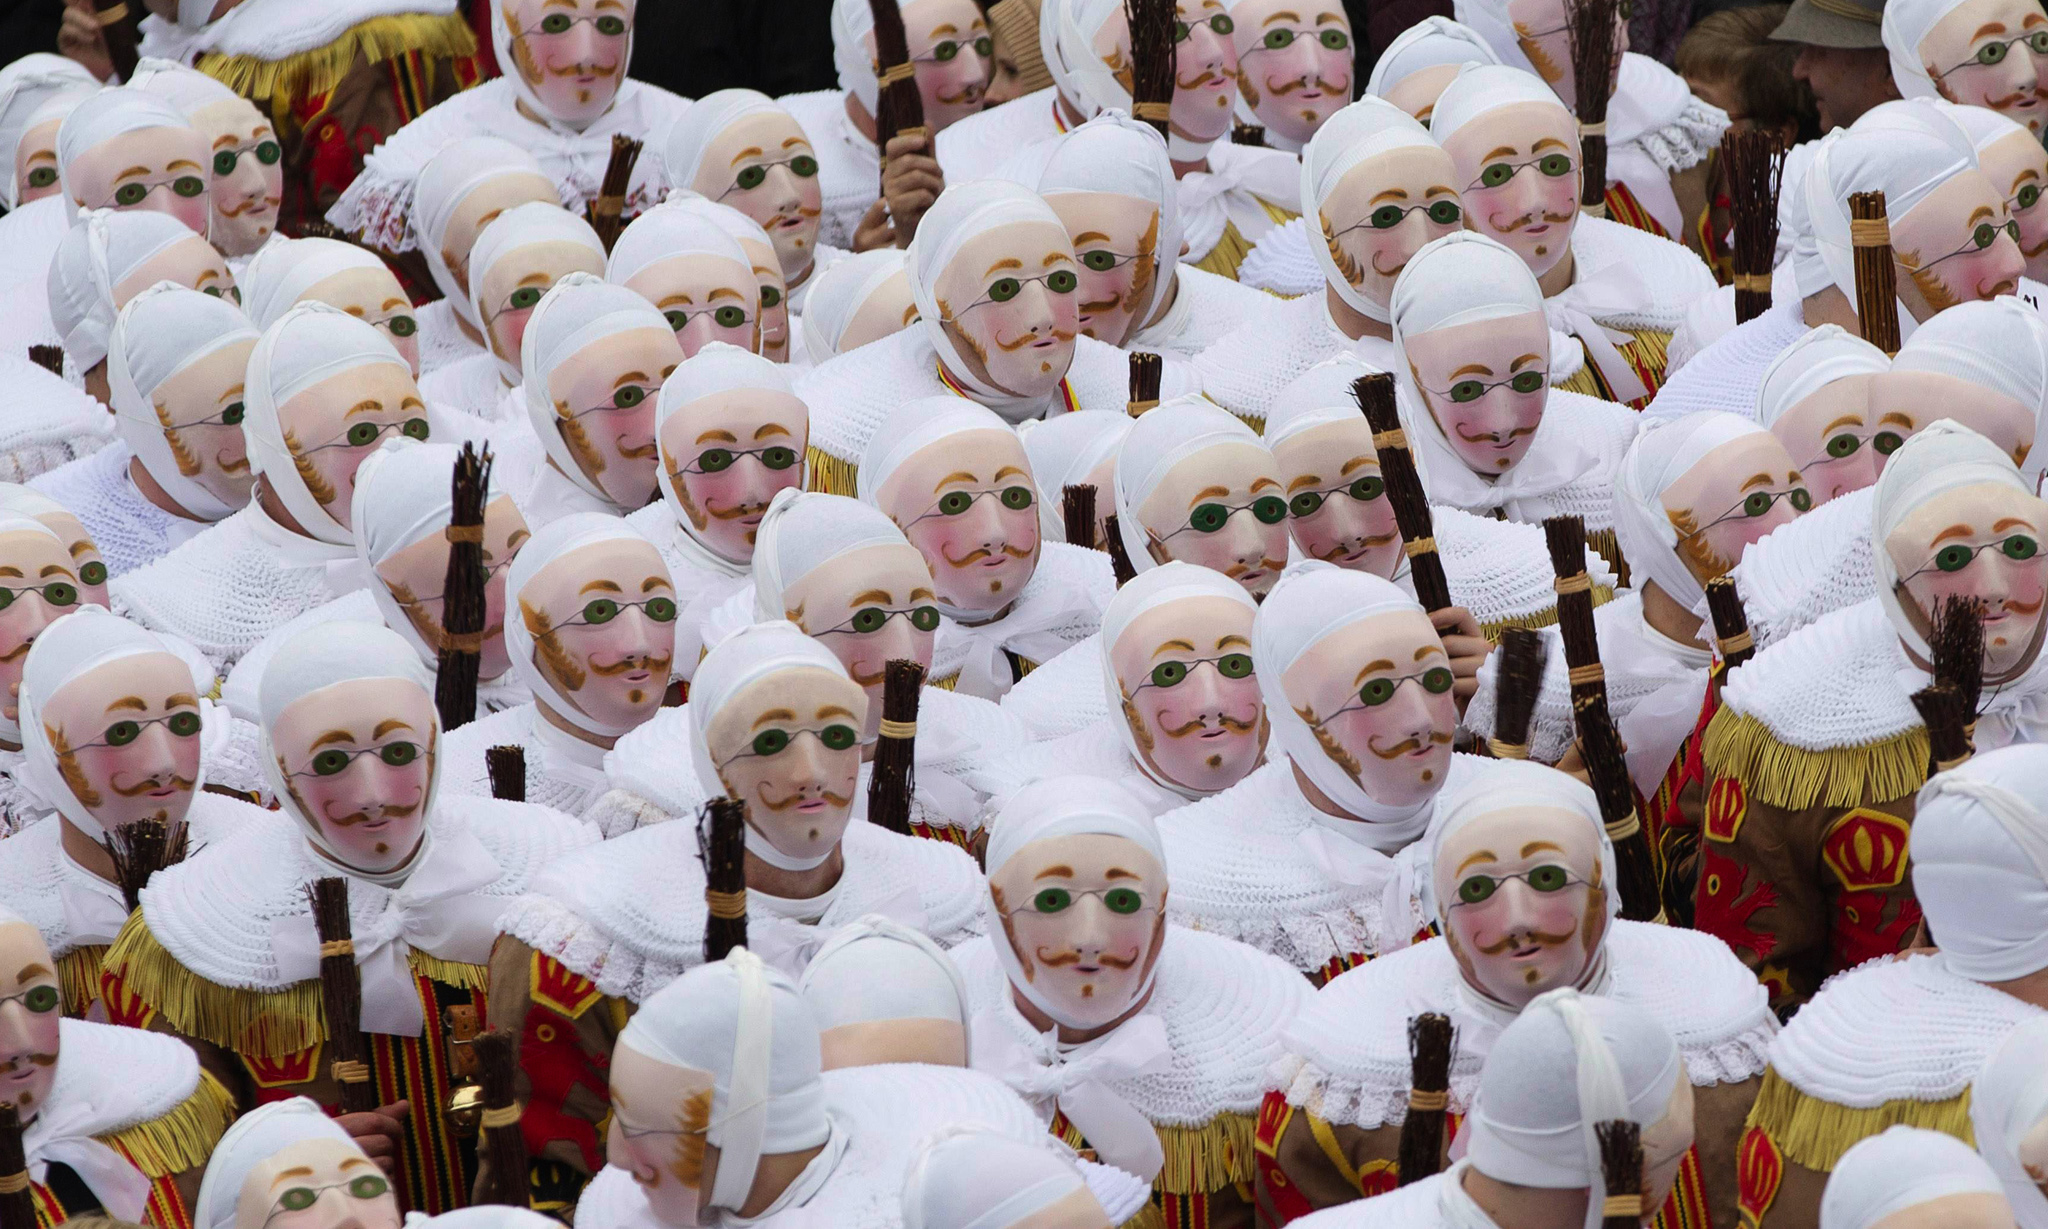 Gilles of Binche parade, a UNESCO World Heritage event, is the biggest and the liveliest annual carnival in Belgium.